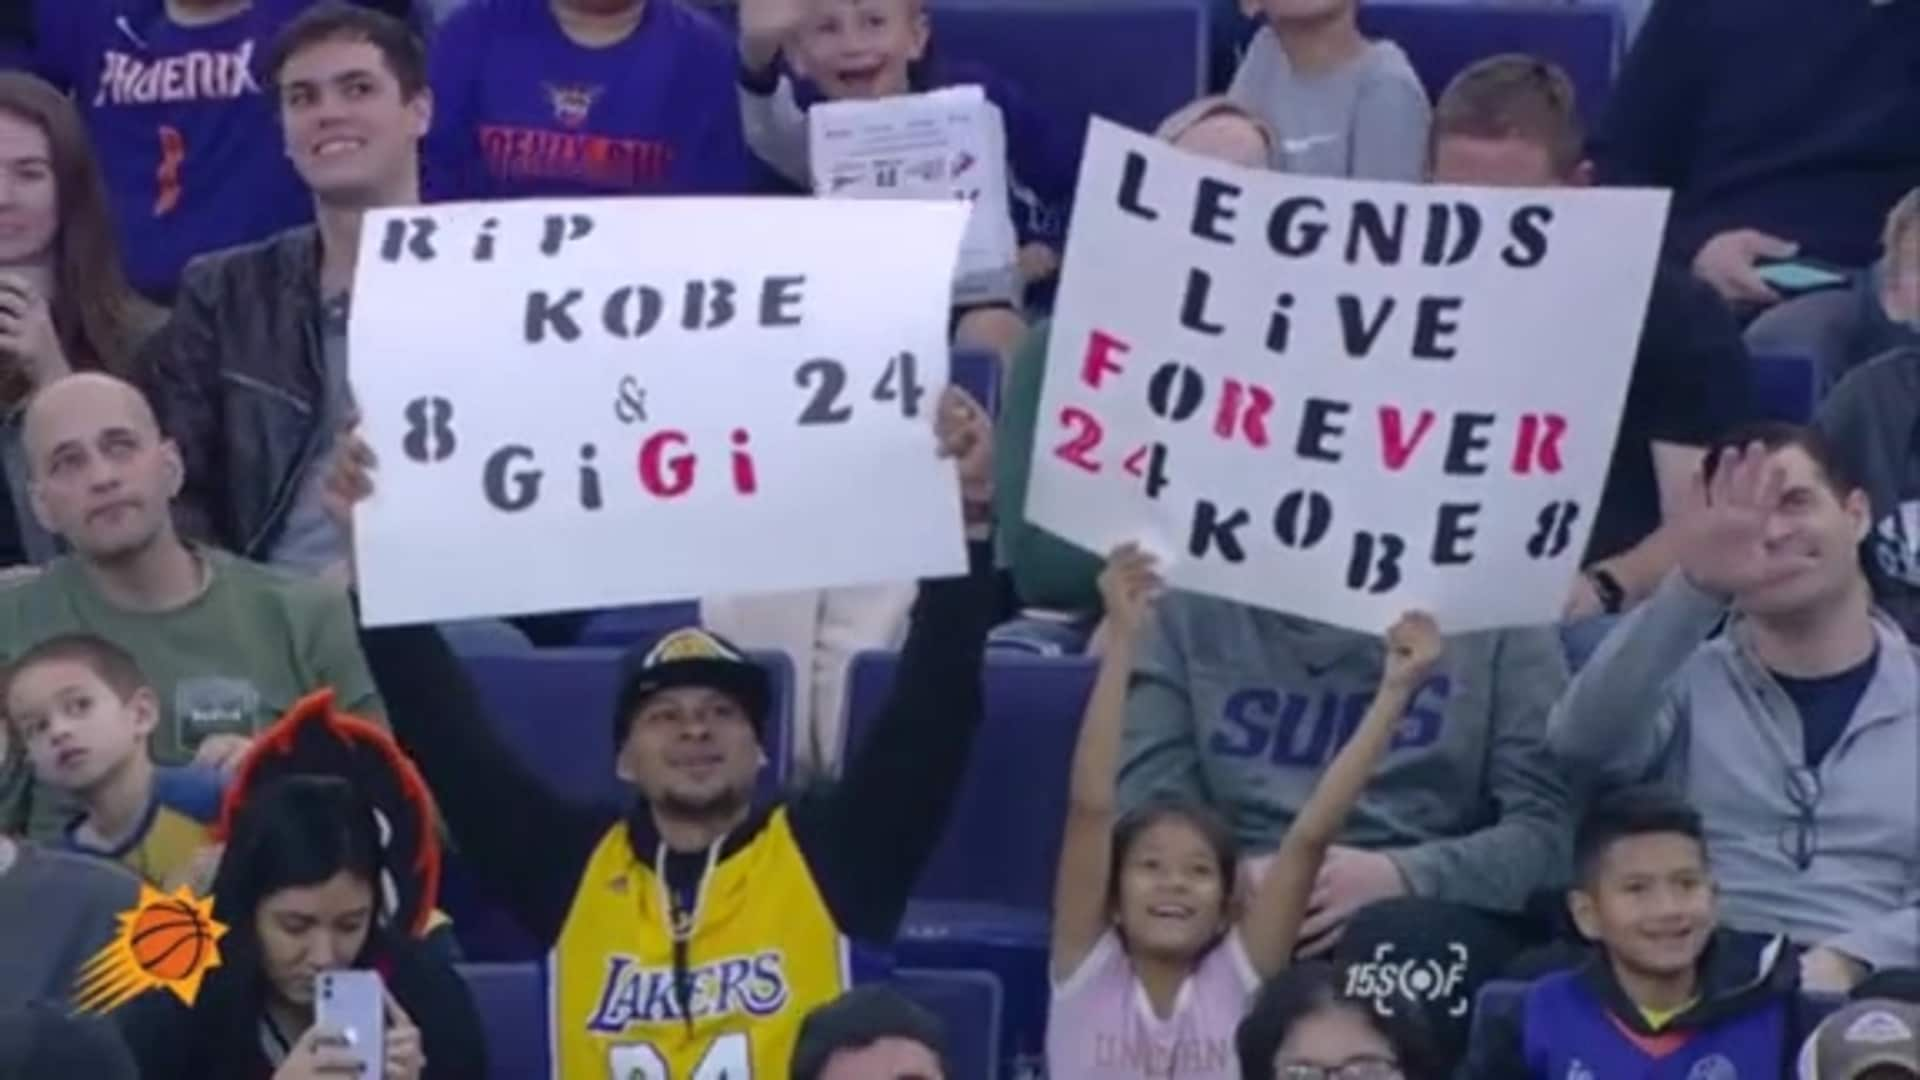 15SOF | Kobe and Gigi Signs